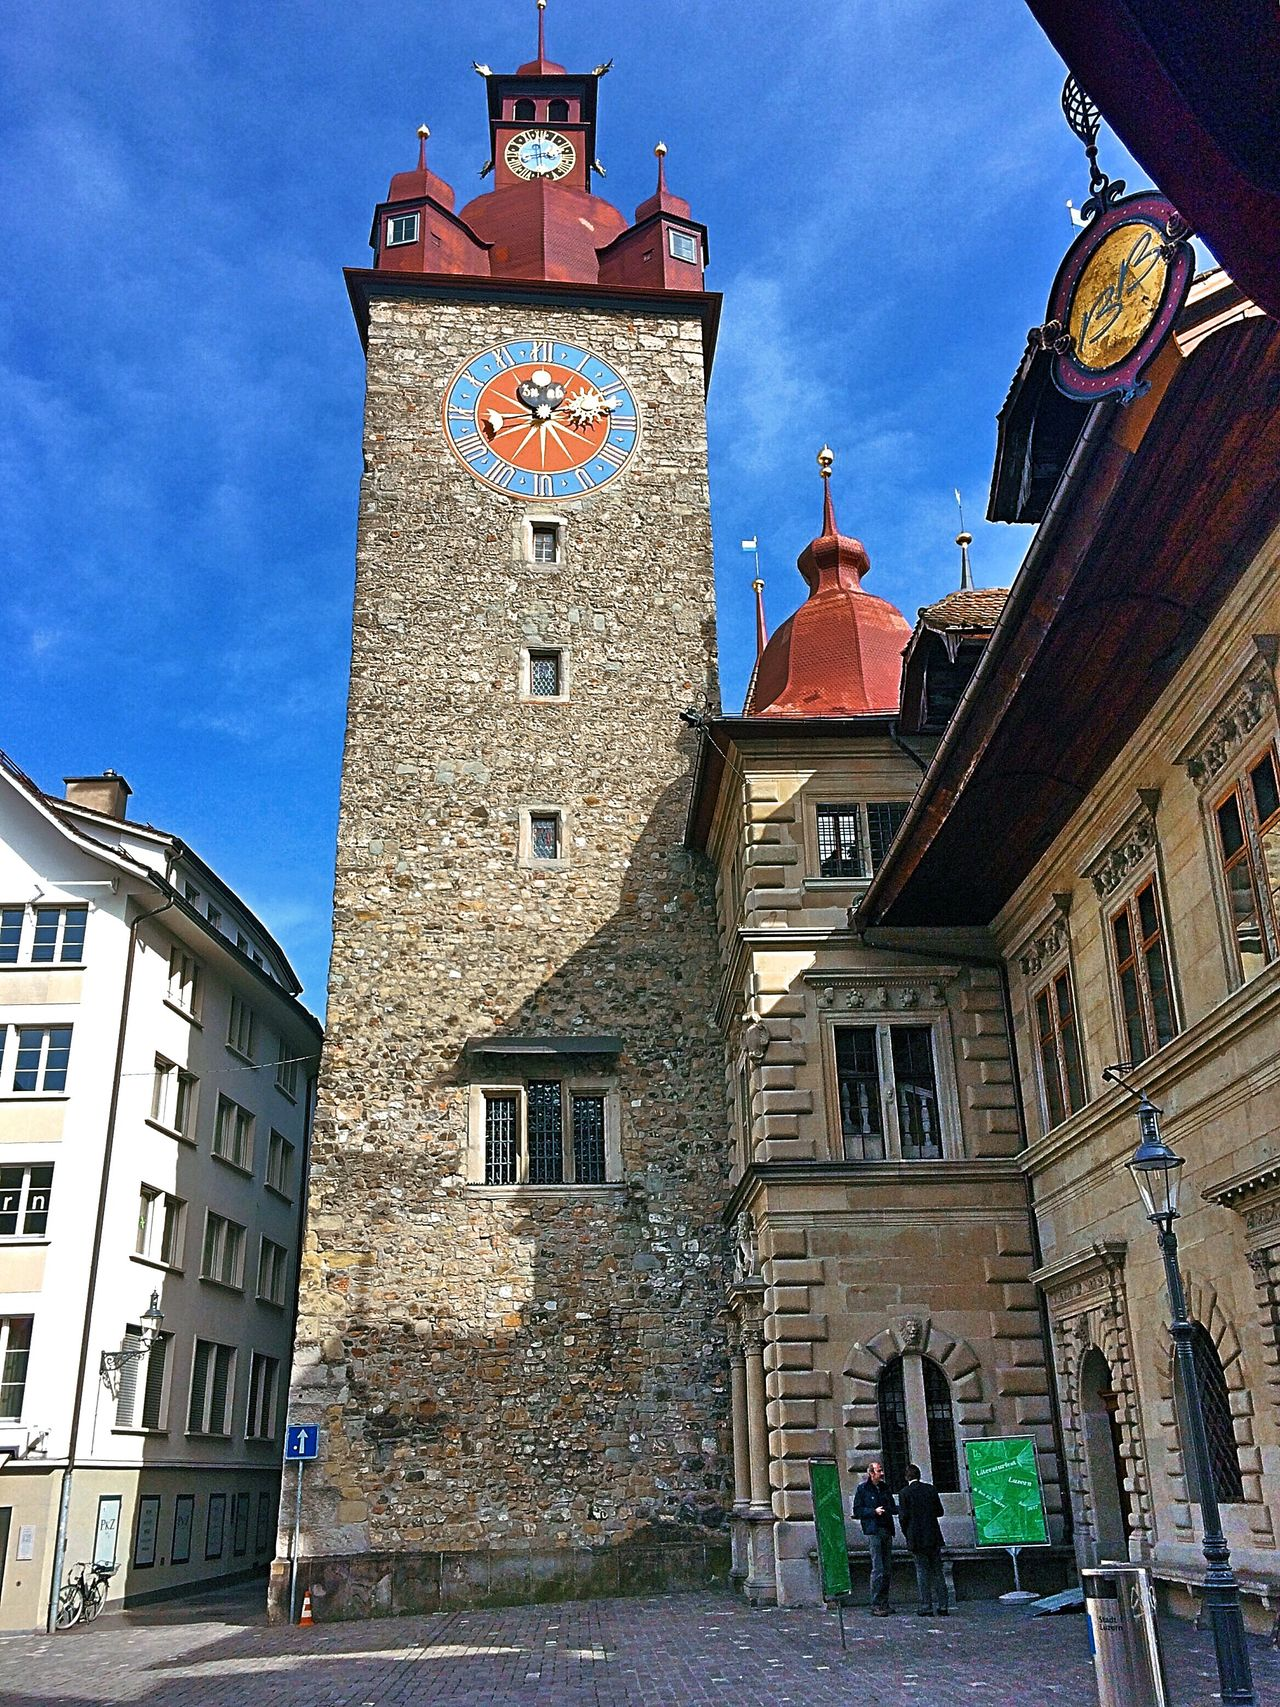 Luzern Architecture Building Exterior Clock Built Structure Clock Tower Tower Time Sky Outdoors No People Day Clock Face Medieval Astronomical Clock